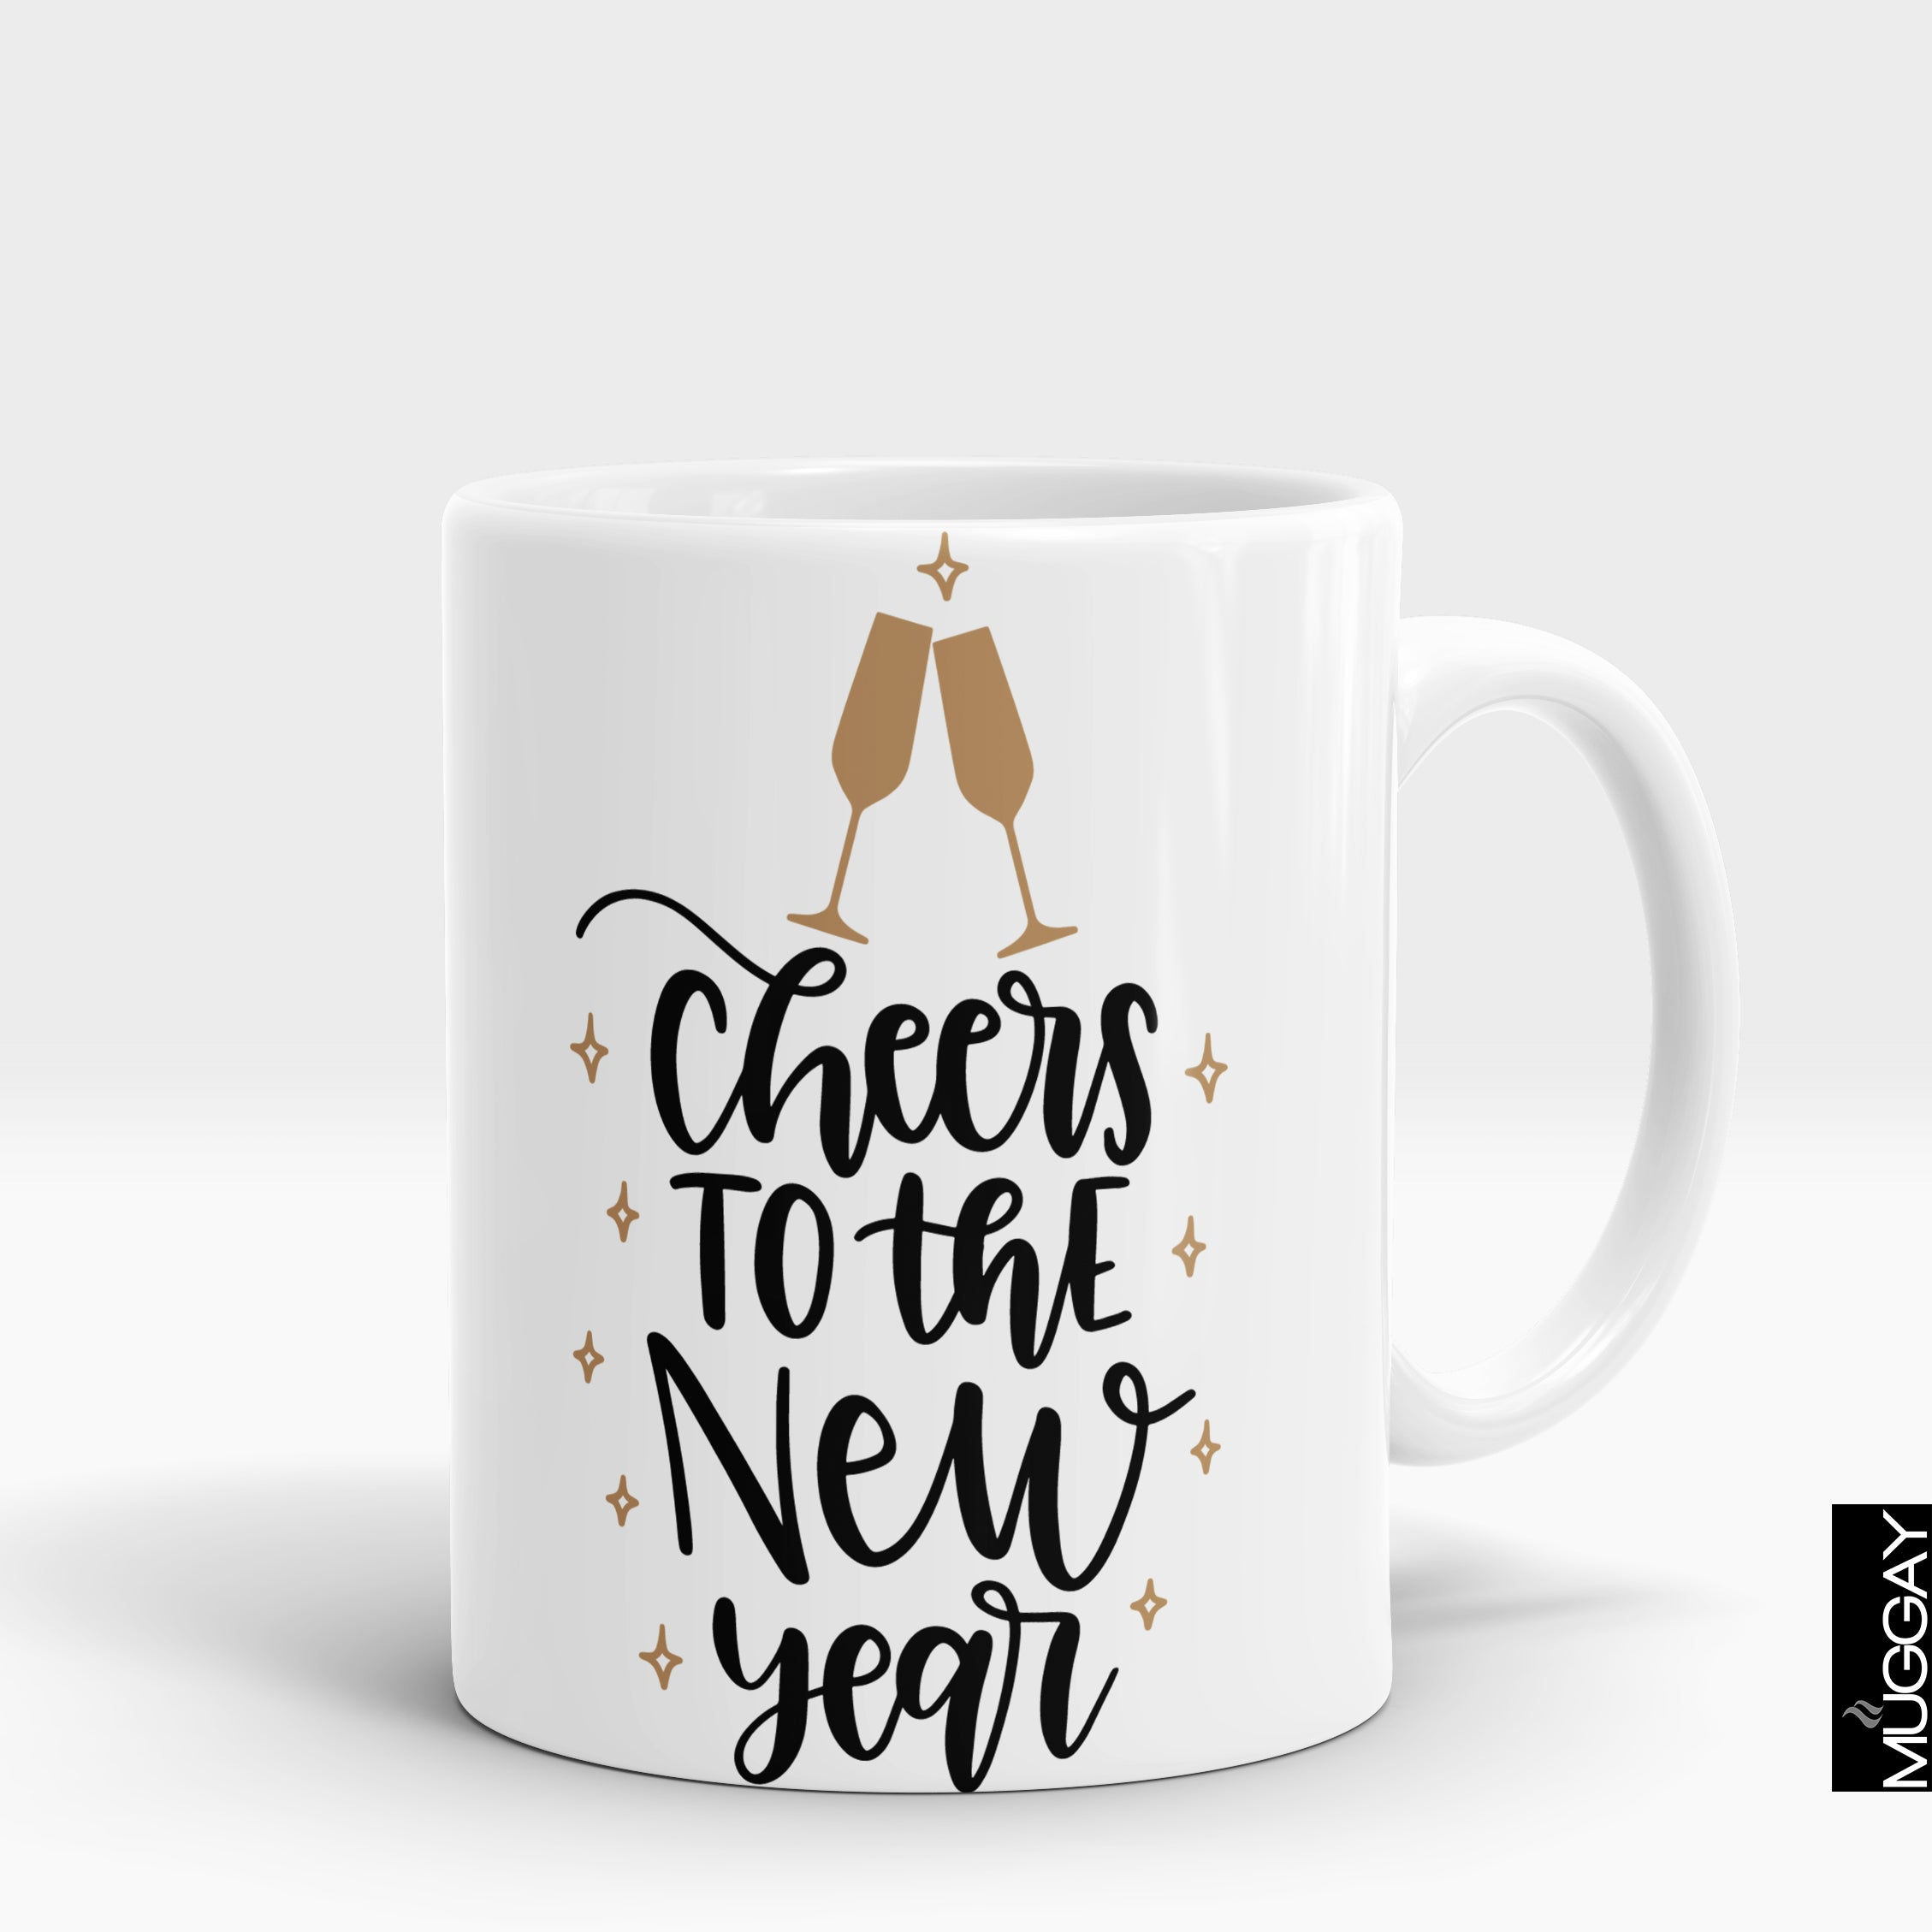 Cheers to the new year - Muggay.com - Mugs - Printing shop - truck Art mugs - Mug printing - Customized printing - Digital printing - Muggay